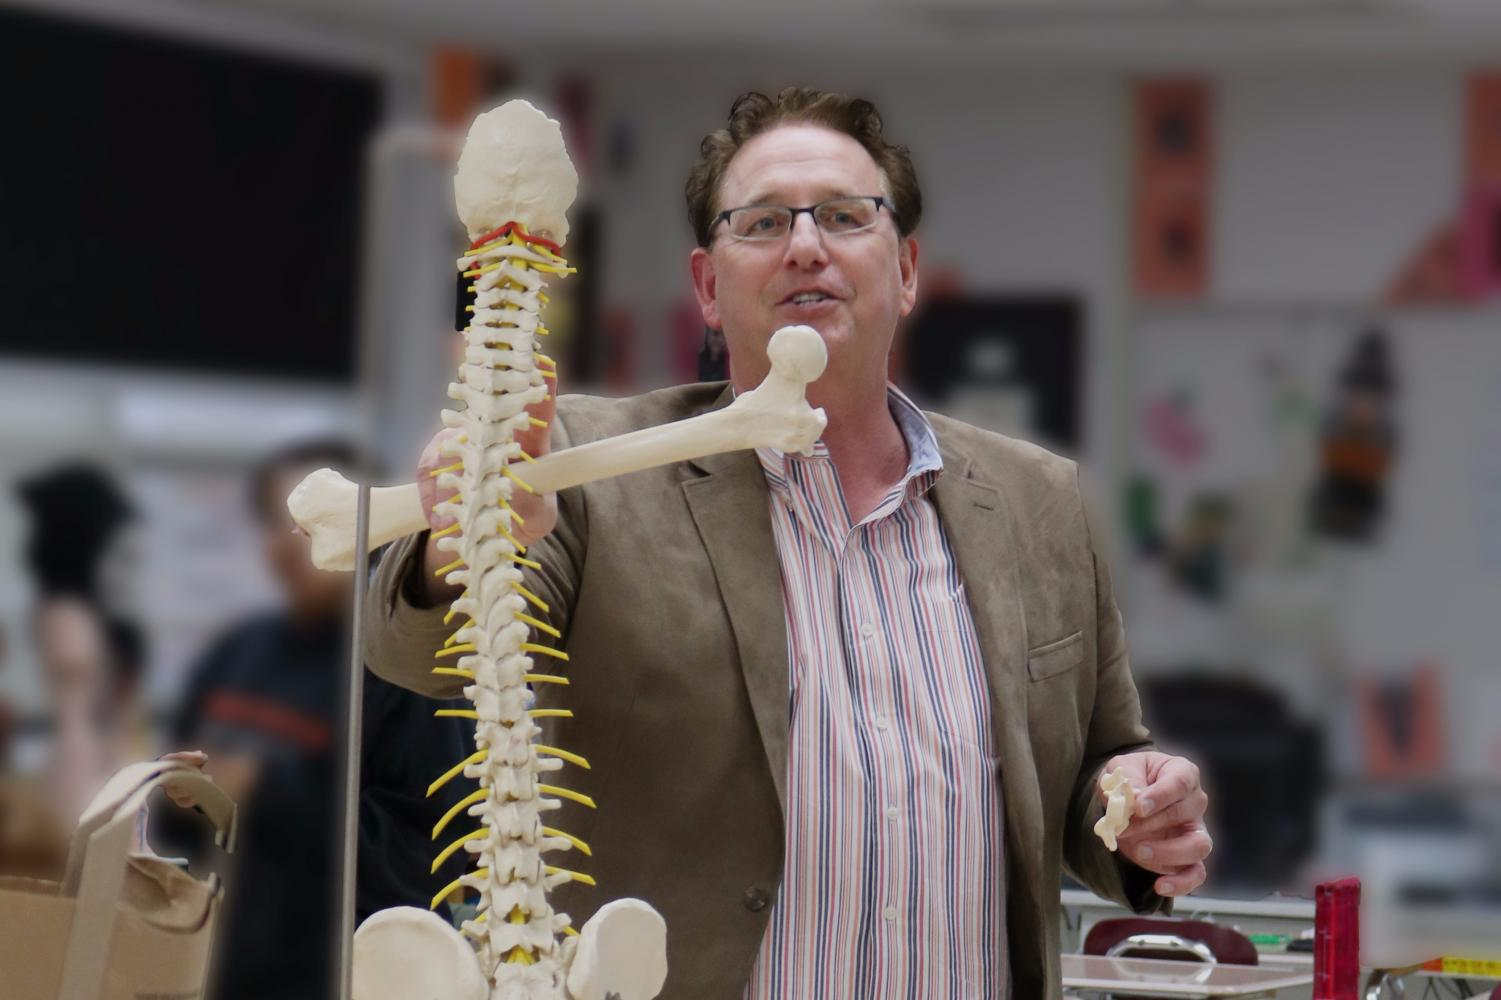 Mr. Kreutz uses models in his classes to indicate different parts of the spine.